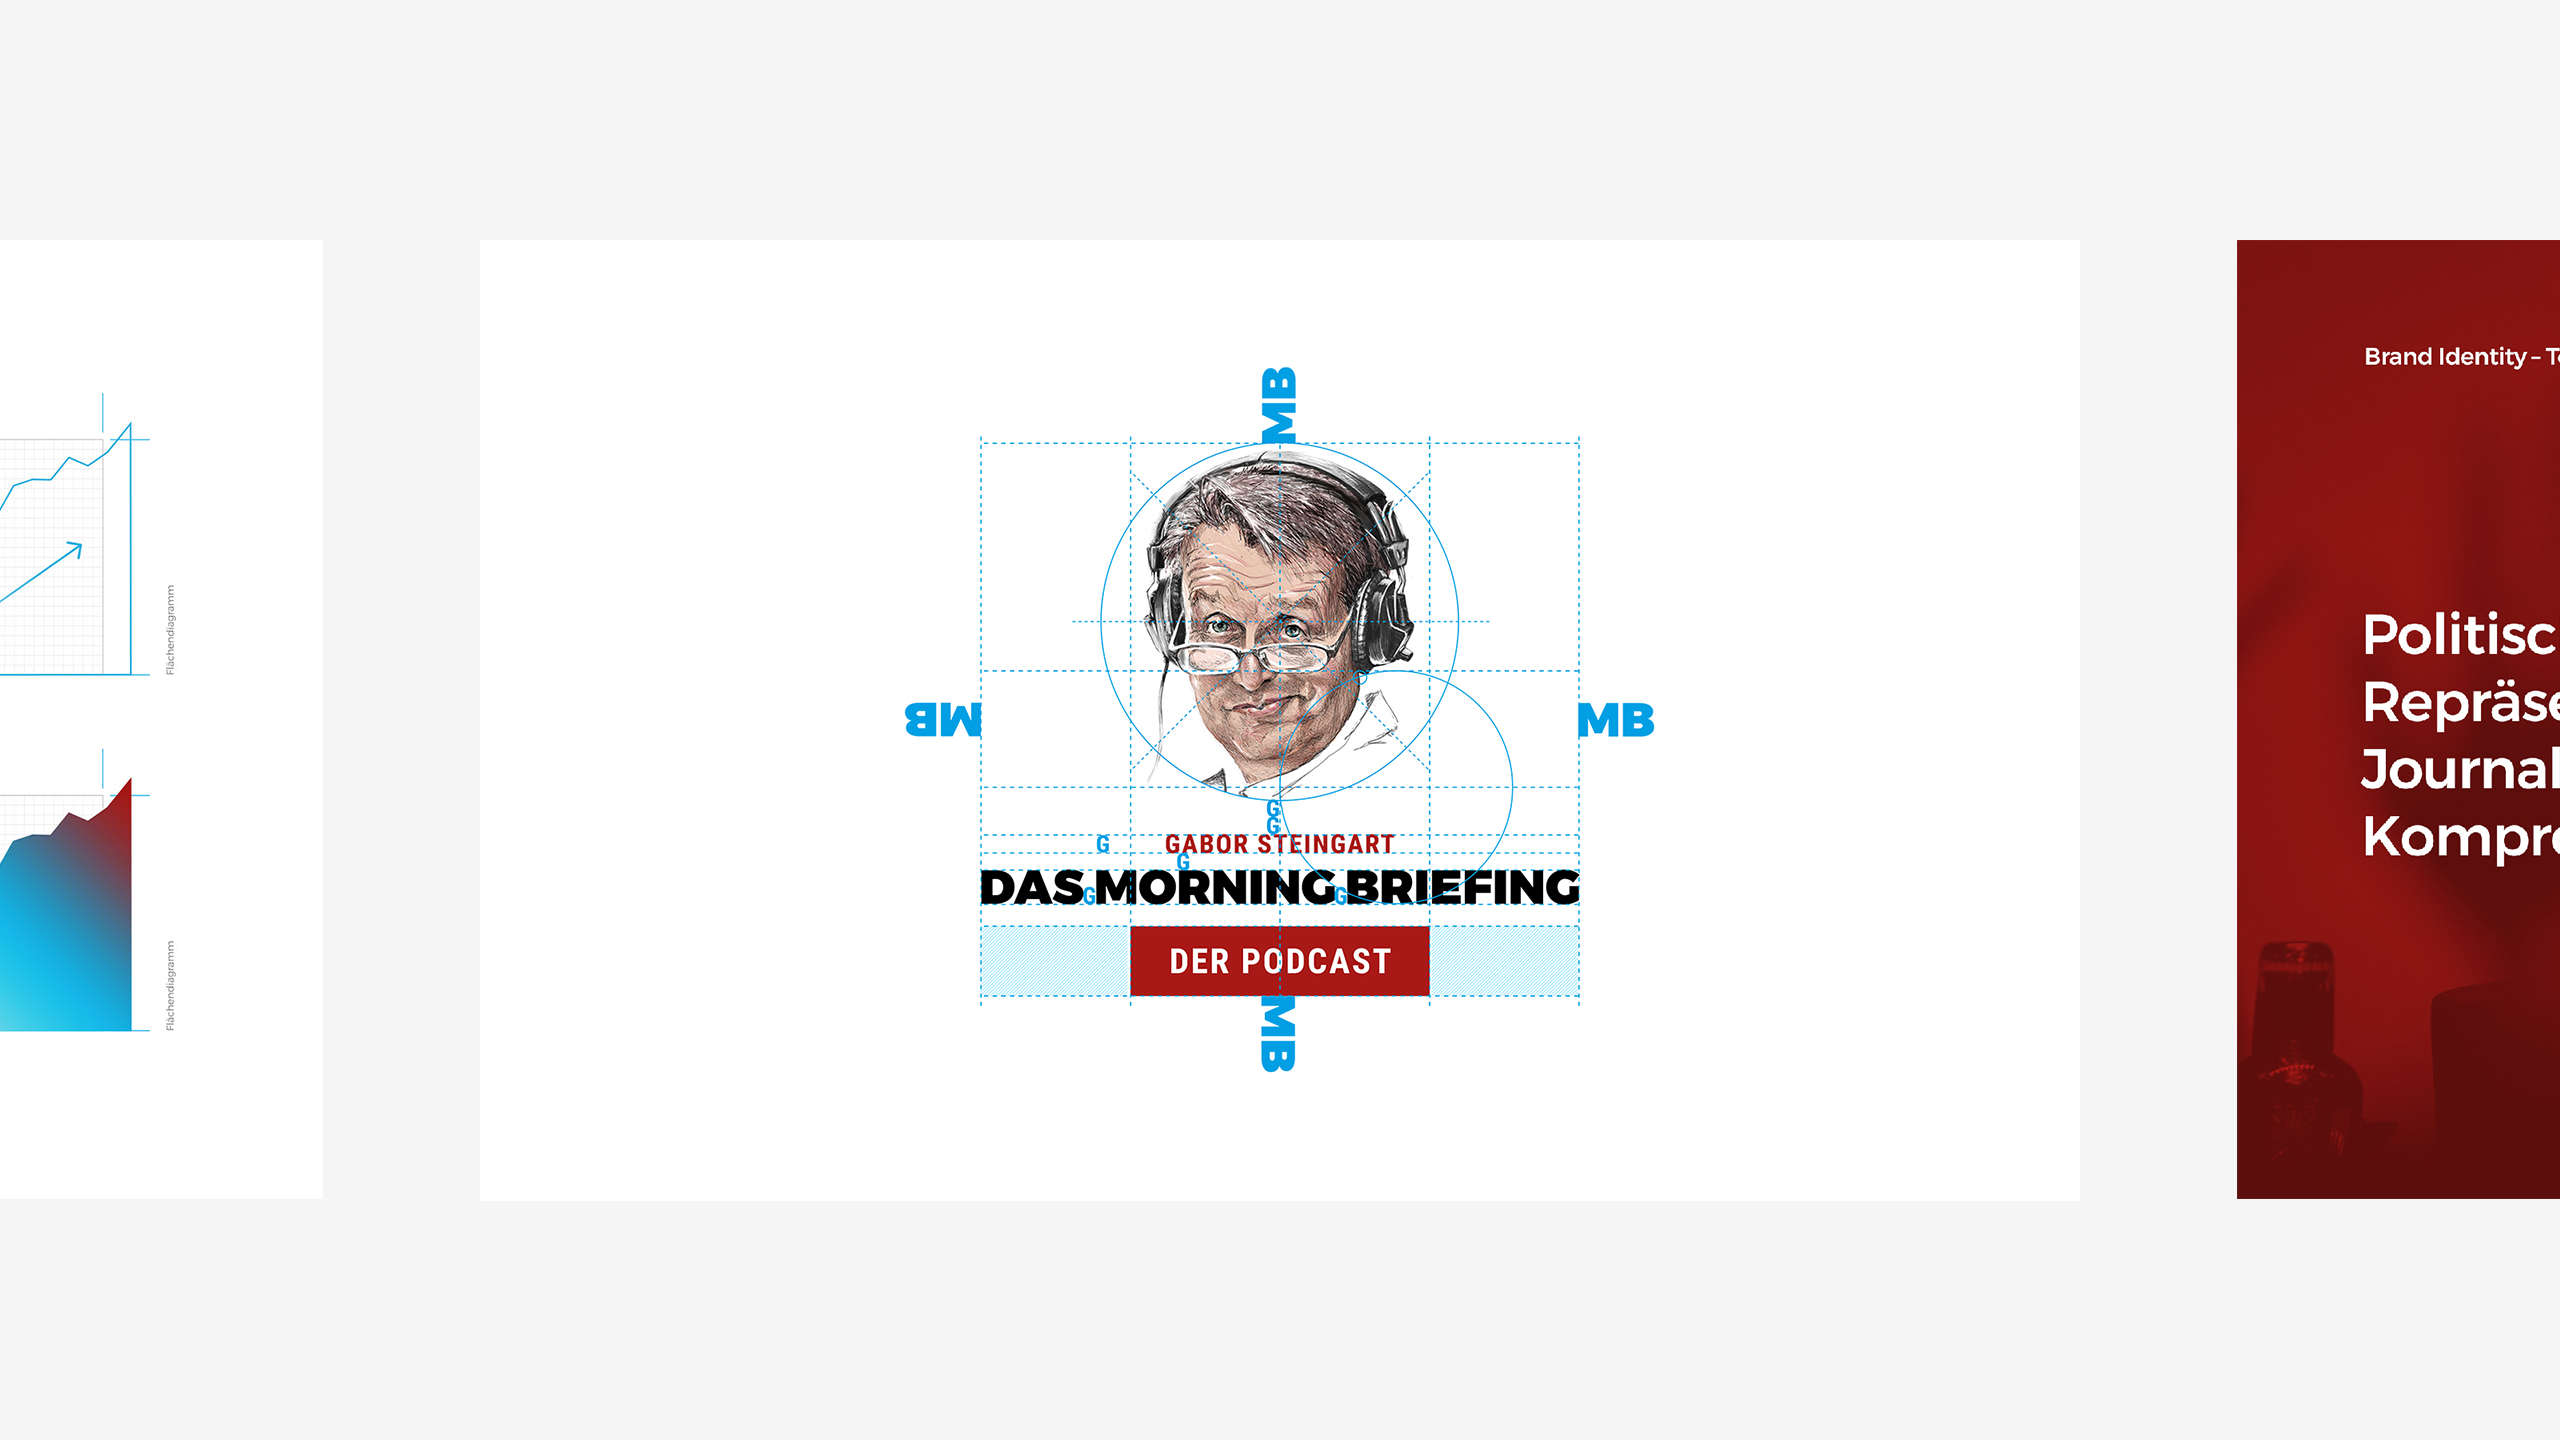 000-gst-das-morning-briefing-corporate-identity